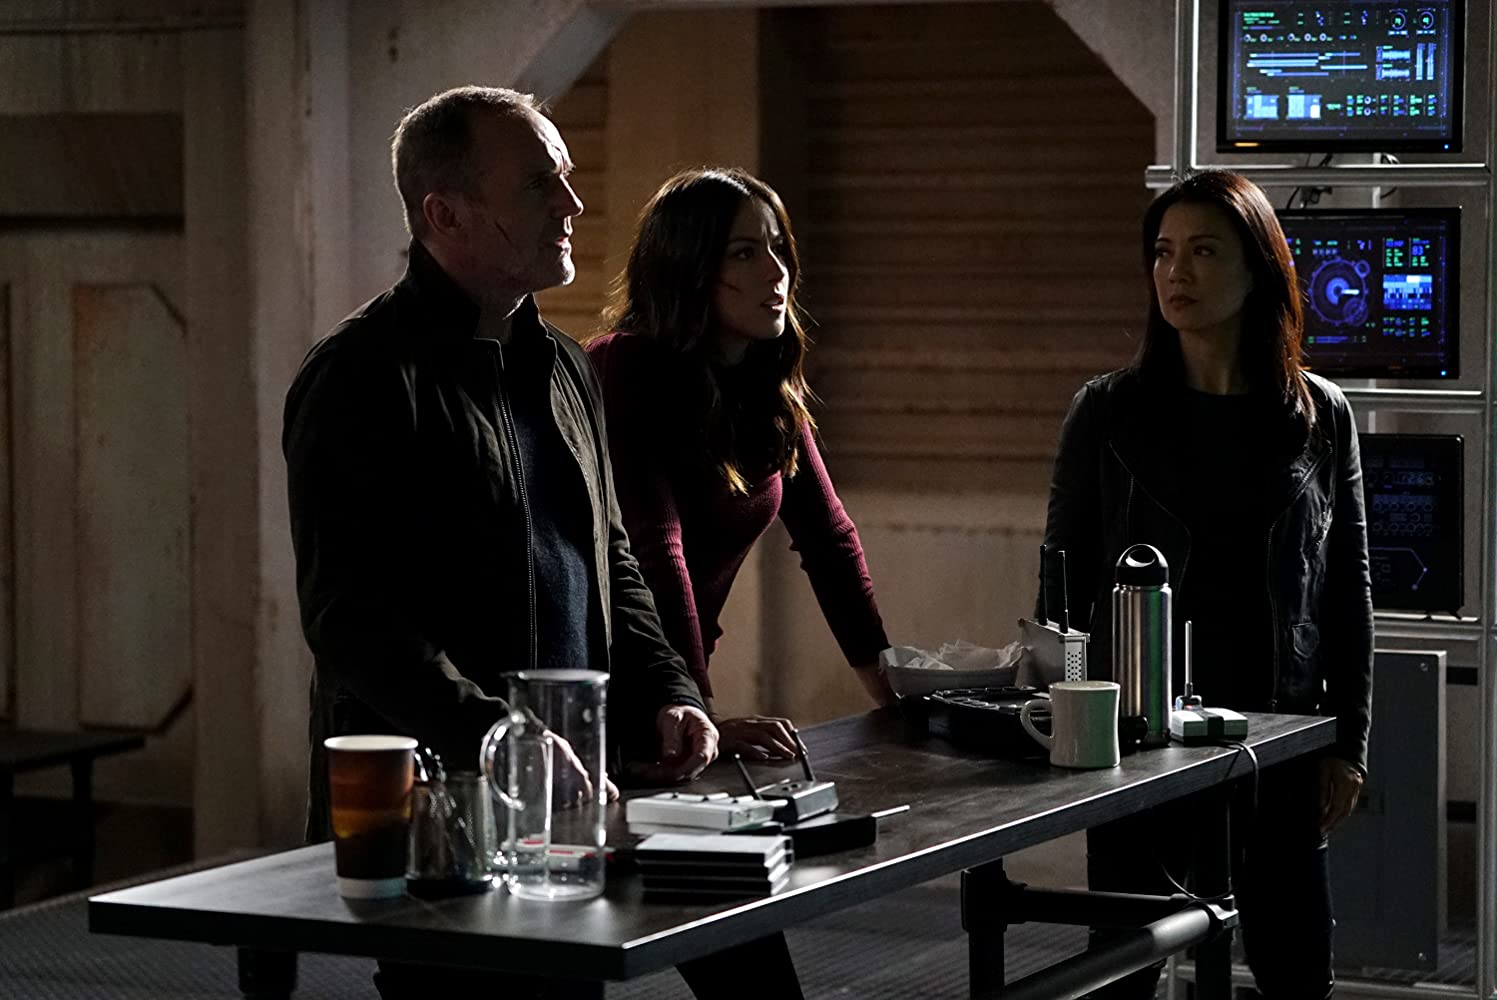 Ming-Na Wen, Clark Gregg, and Chloe Bennet in Agents of S.H.I.E.L.D. (2013)